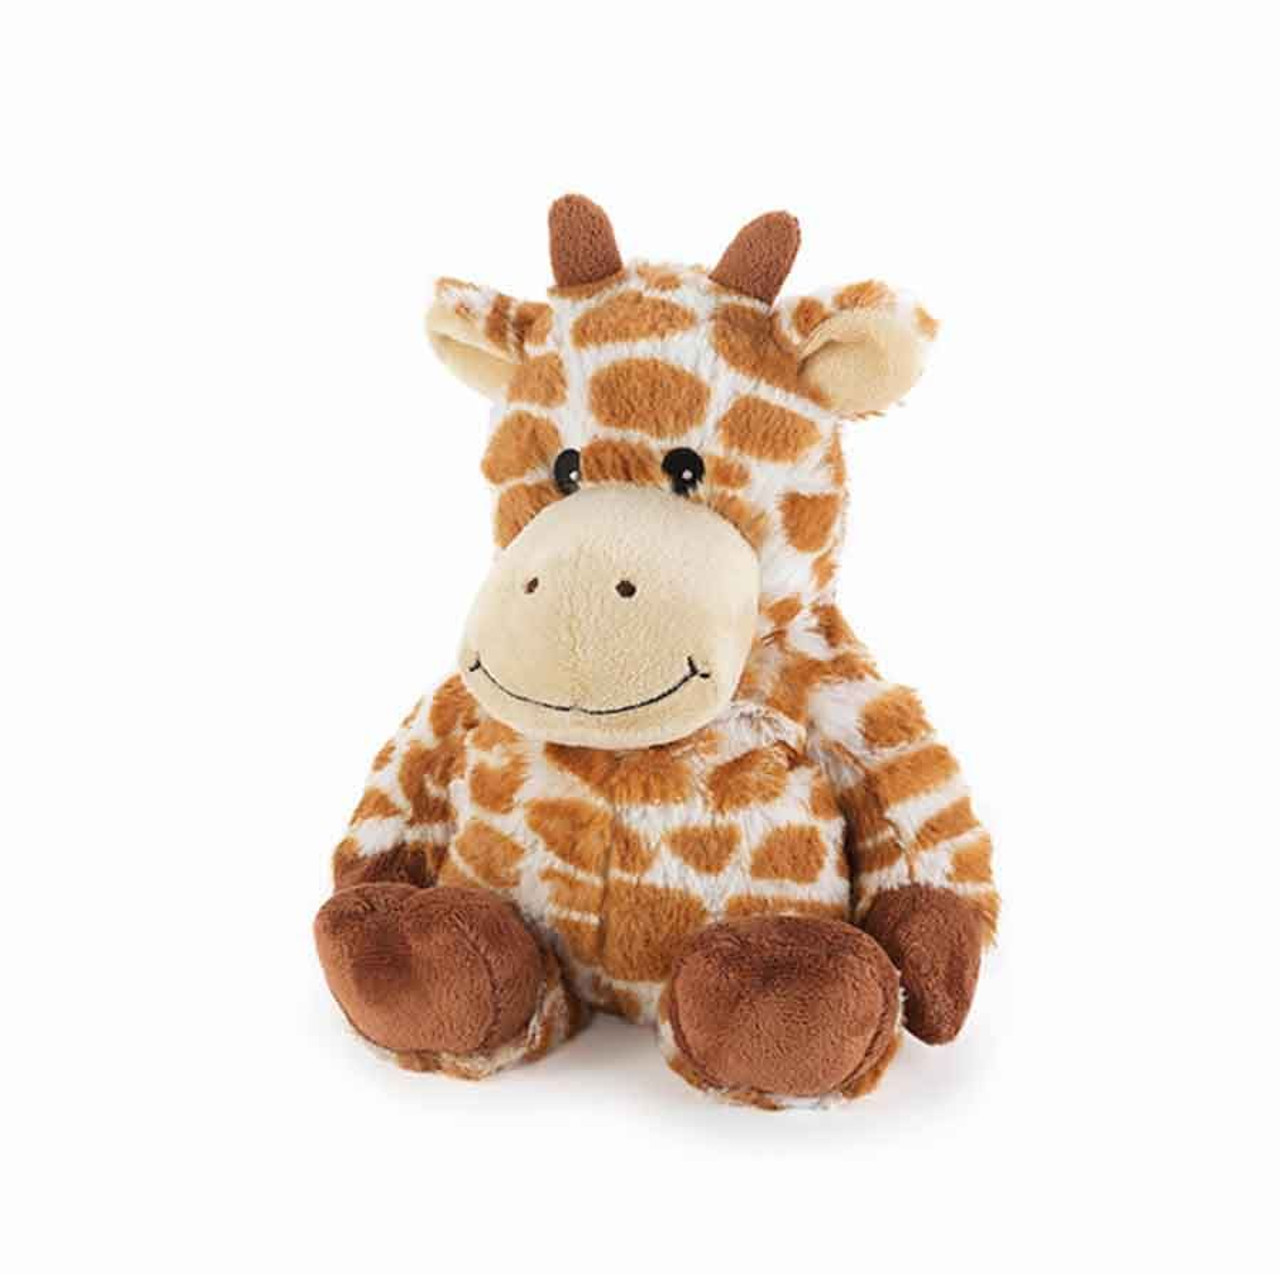 "All age groups can have hours of fun using their Warmies® Cozy Plush Giraffe, knowing that they can be warm all night long.   The 13"" Giraffe is fully microwavable yet entirely safe to hold tight after taking a bath, putting on PJs, and heading up the stairs to bed."